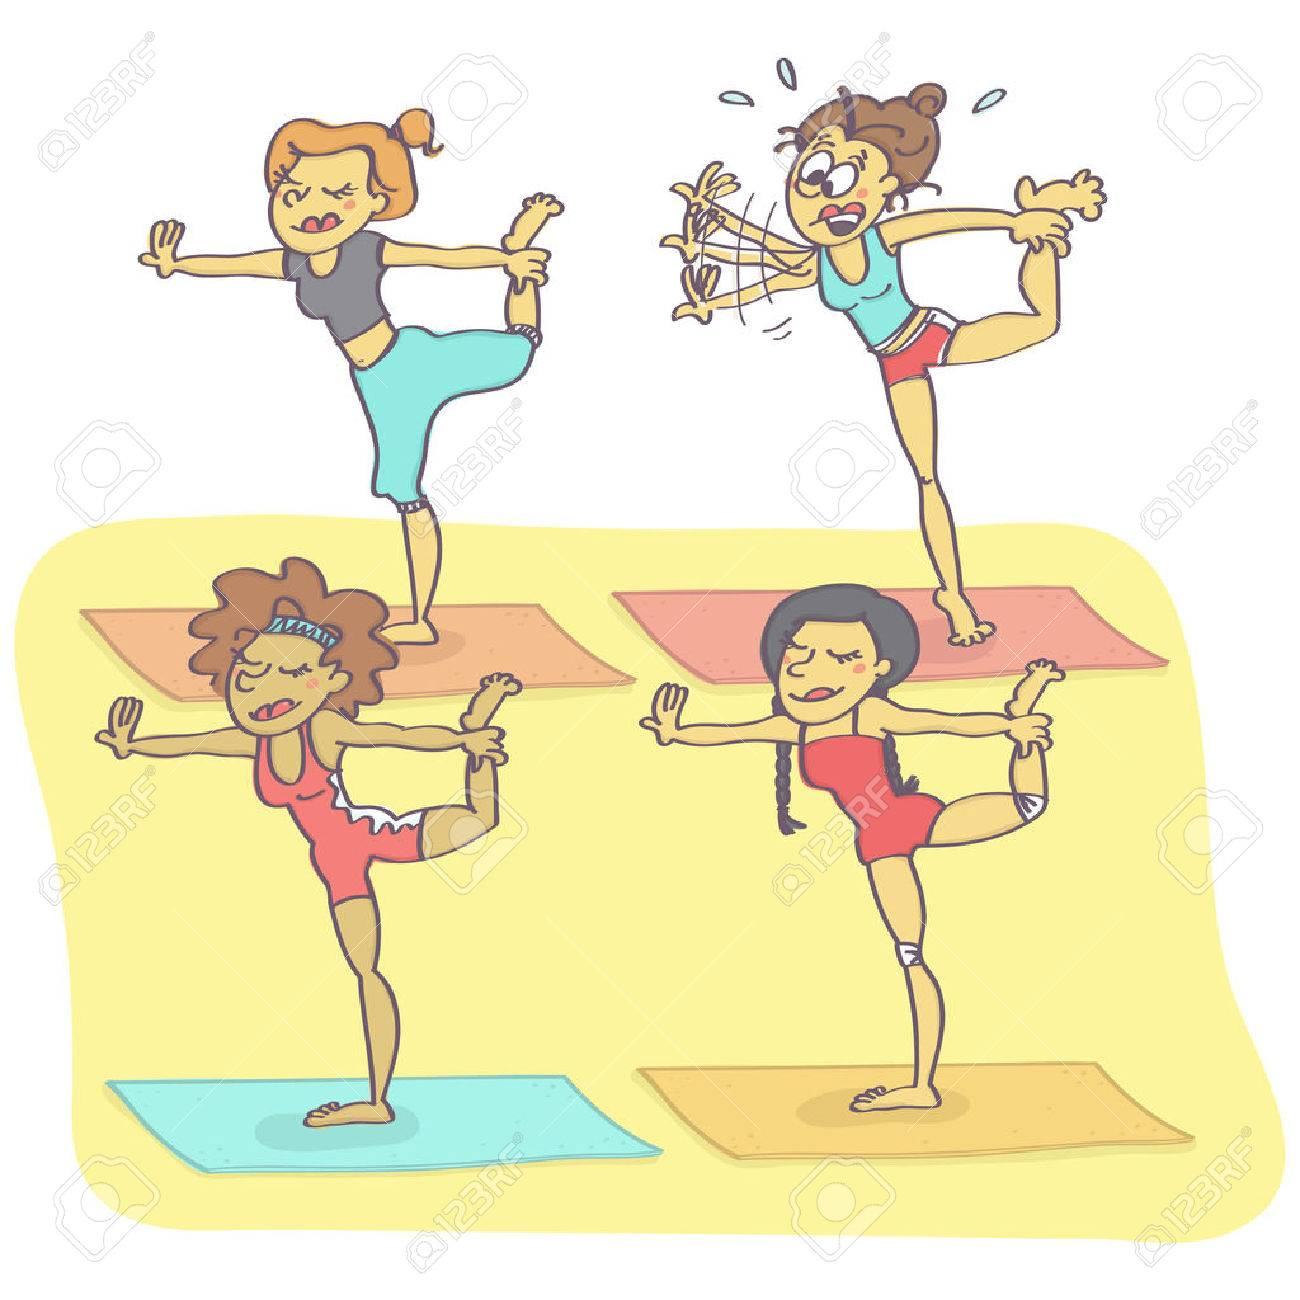 Funny Yoga Cartoon Images Funny Png